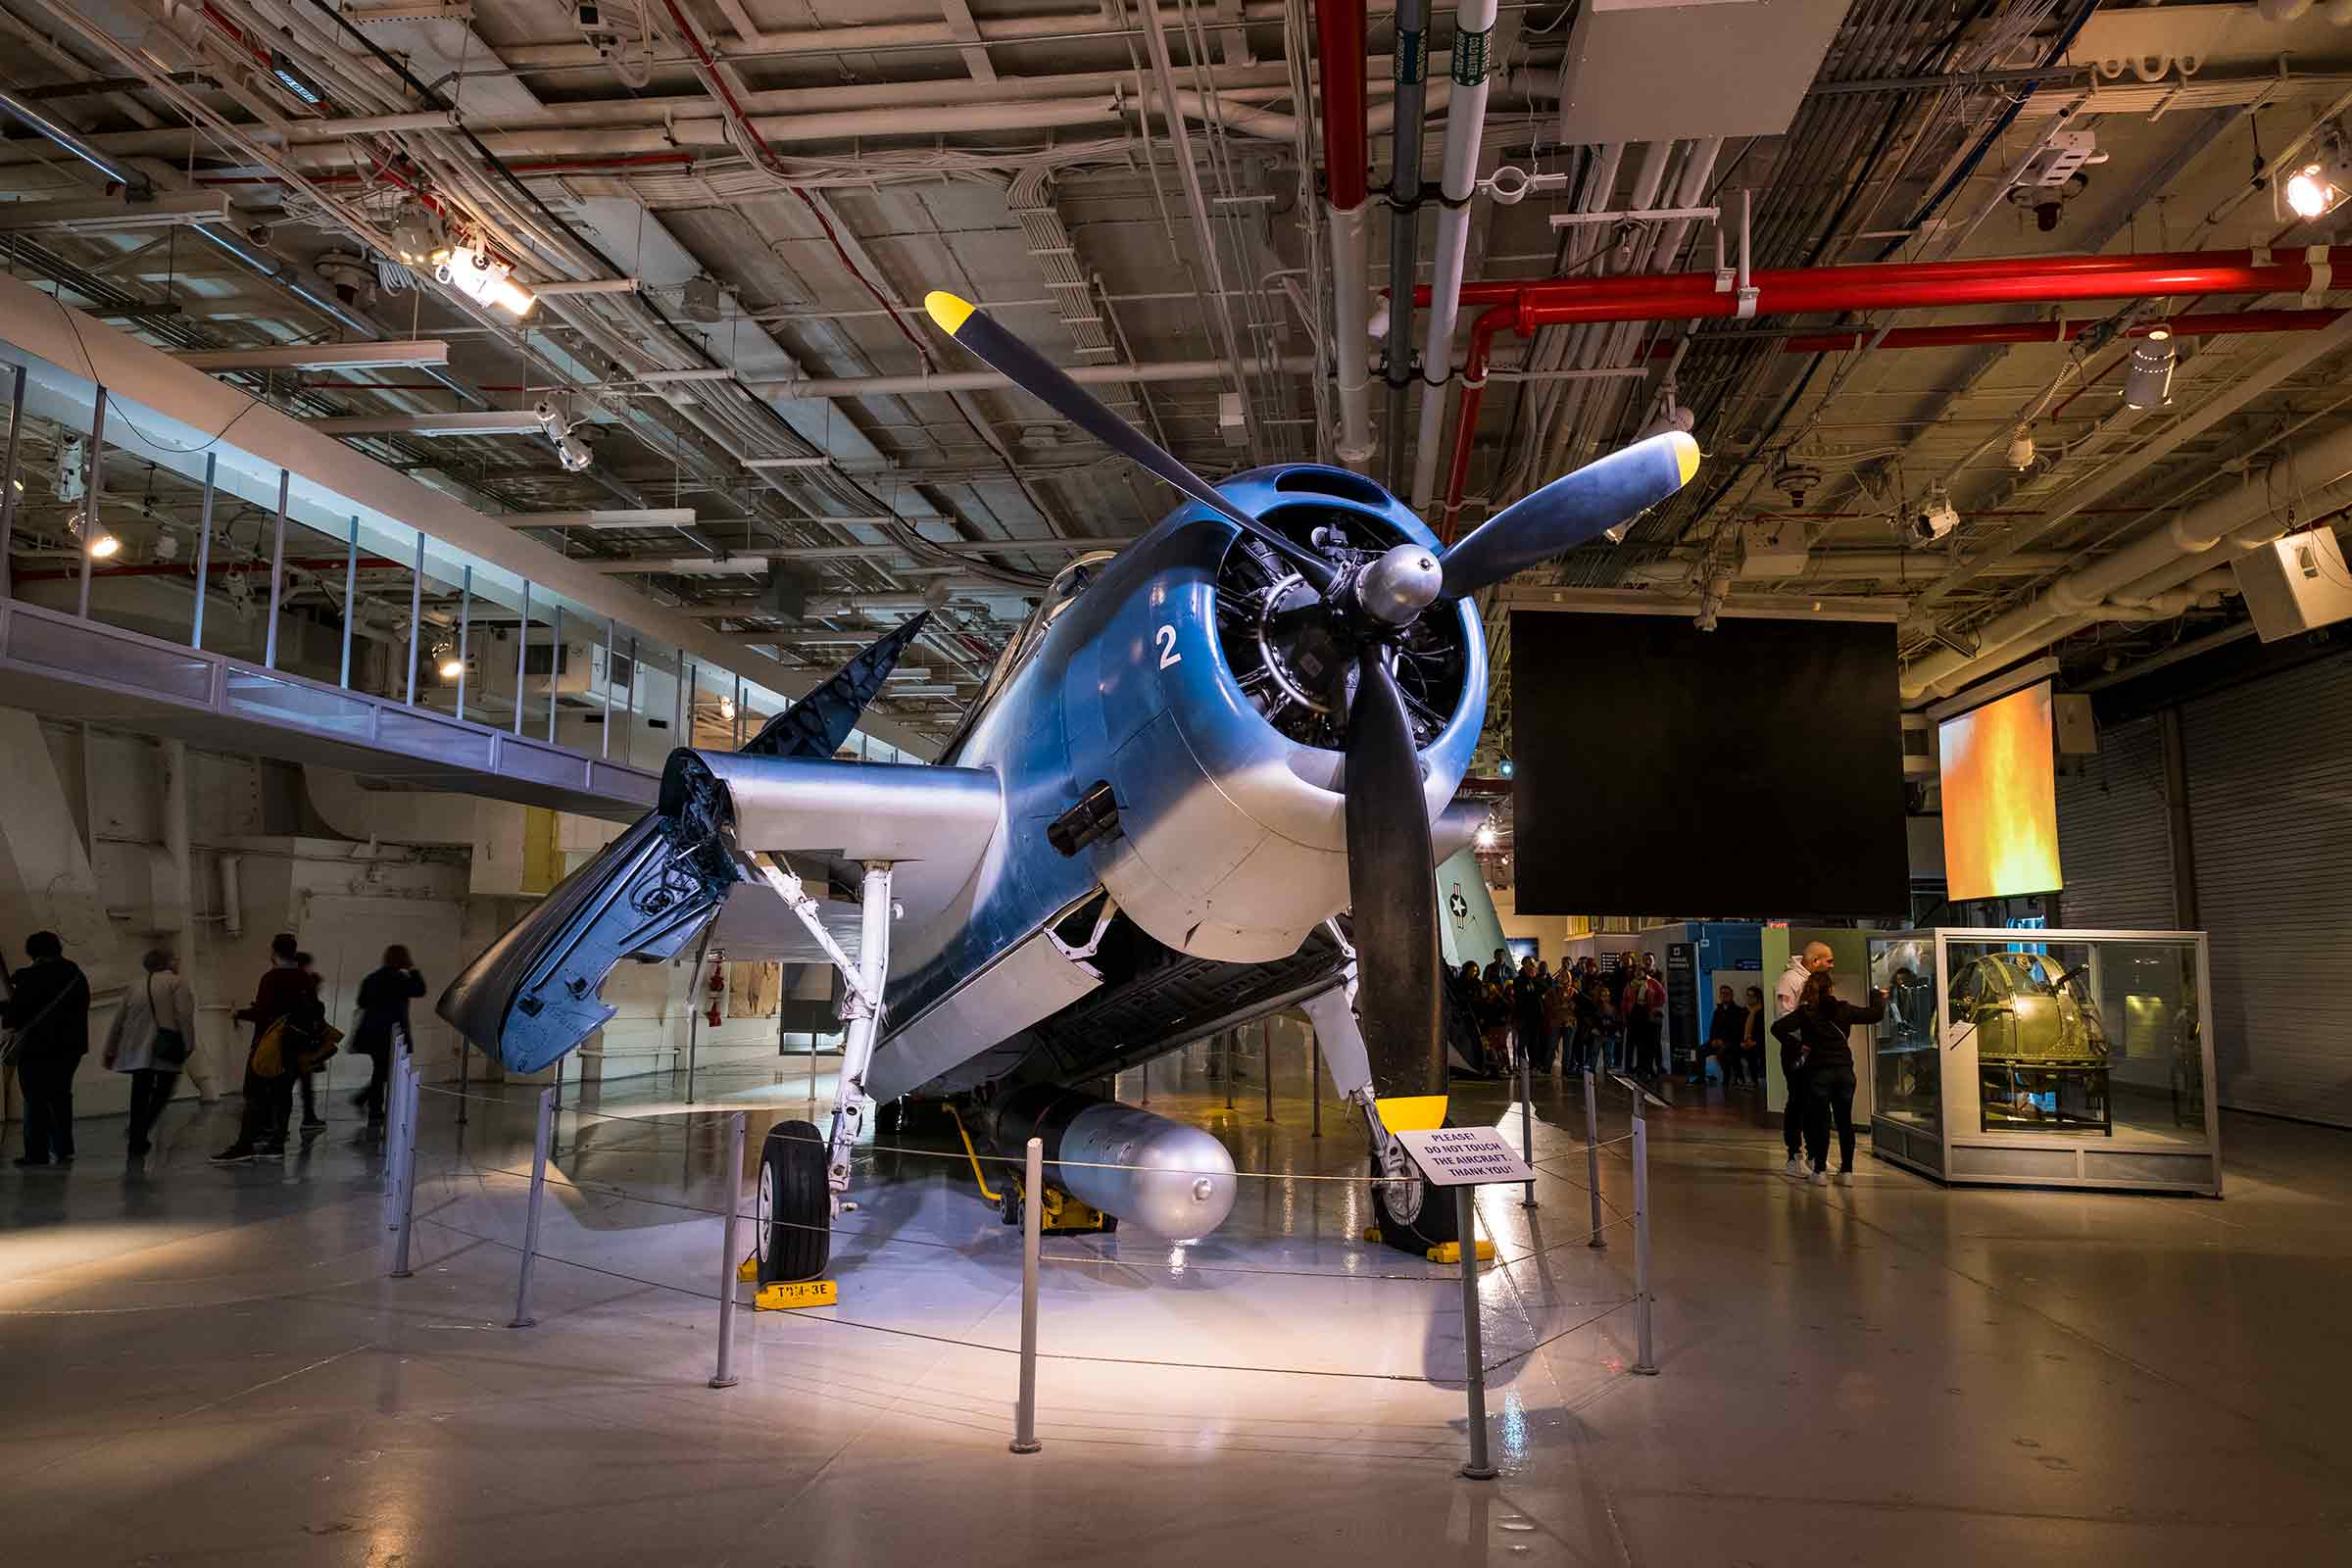 A propeller powered plane is one of the many exhibits at the Intrepid Museum